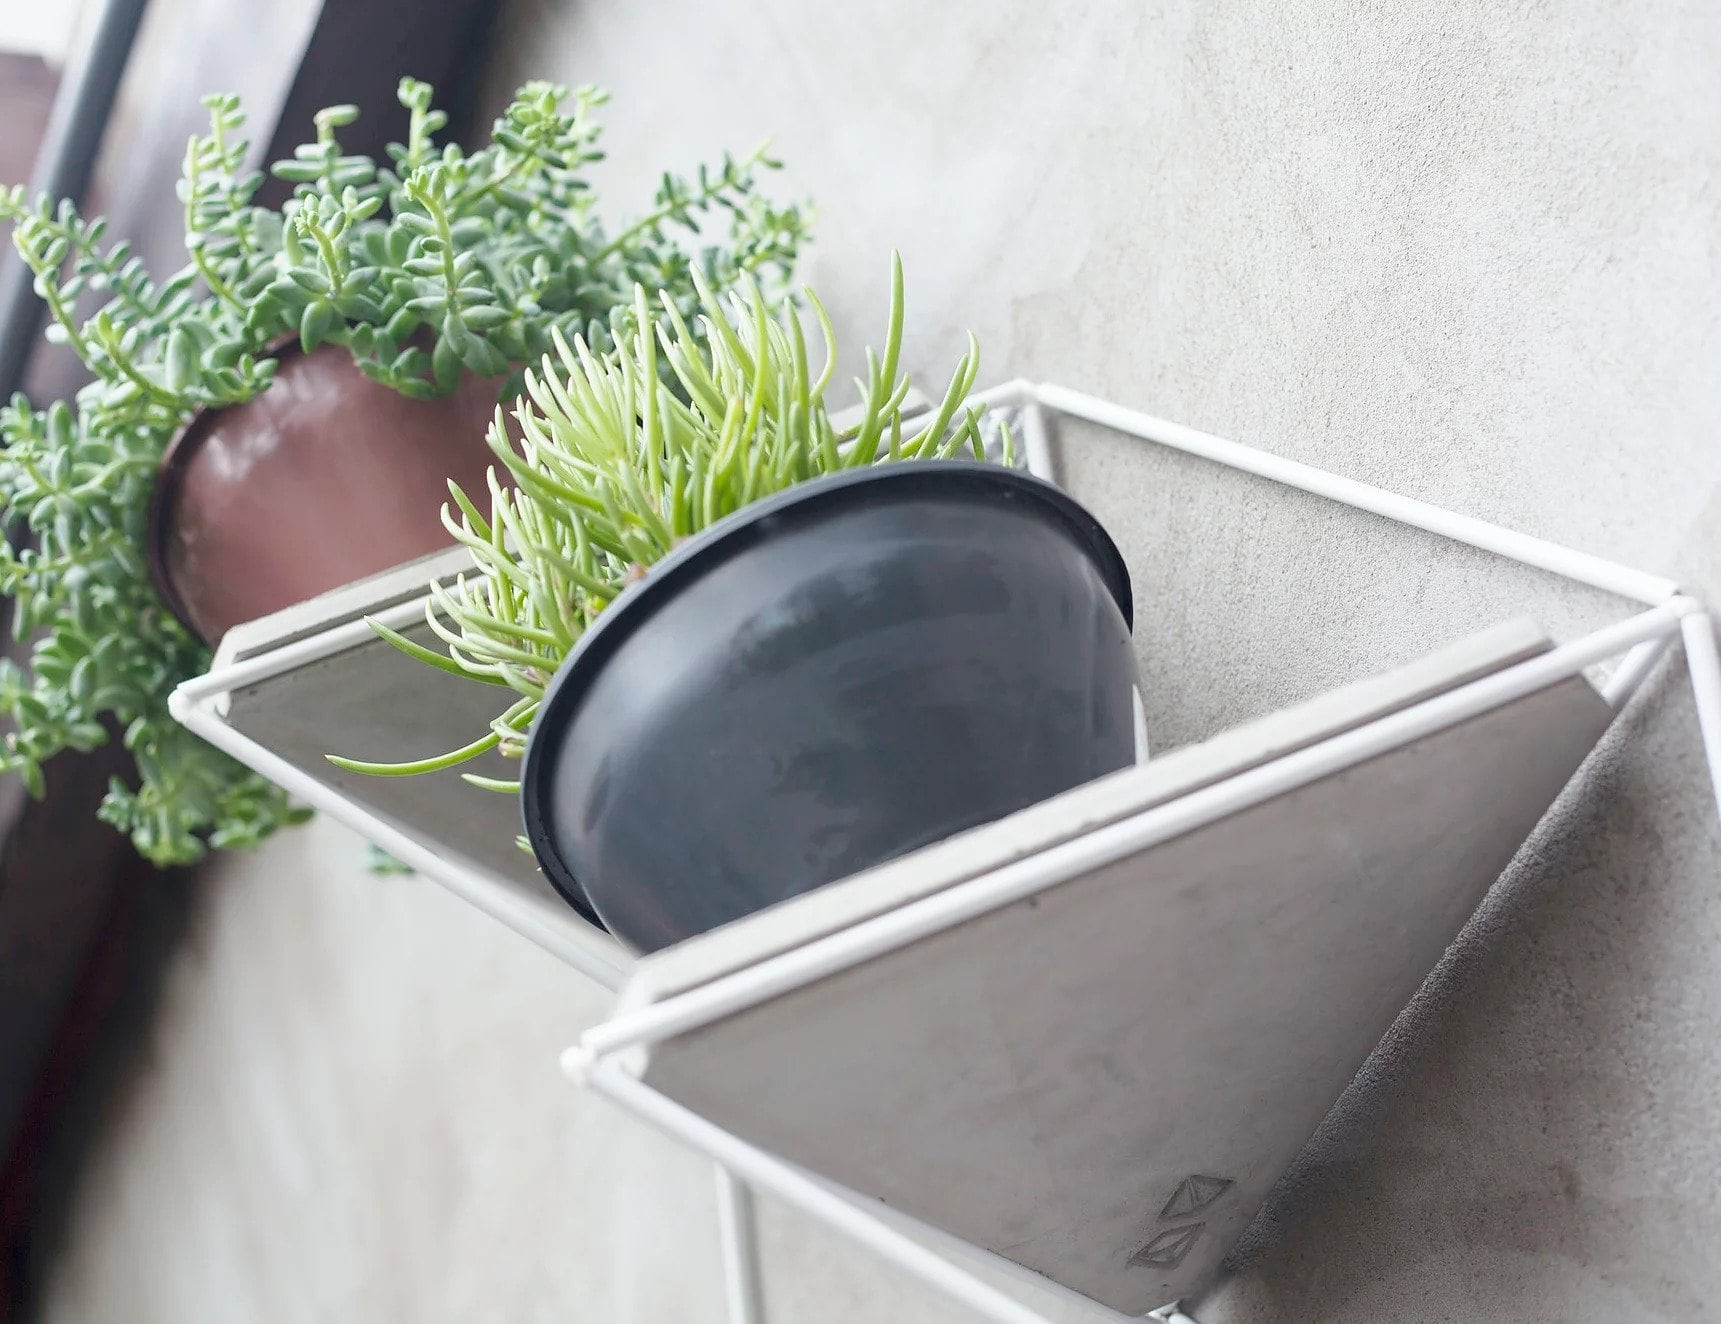 Estudio Parrado Garden Modules are the modern way to hang houseplants